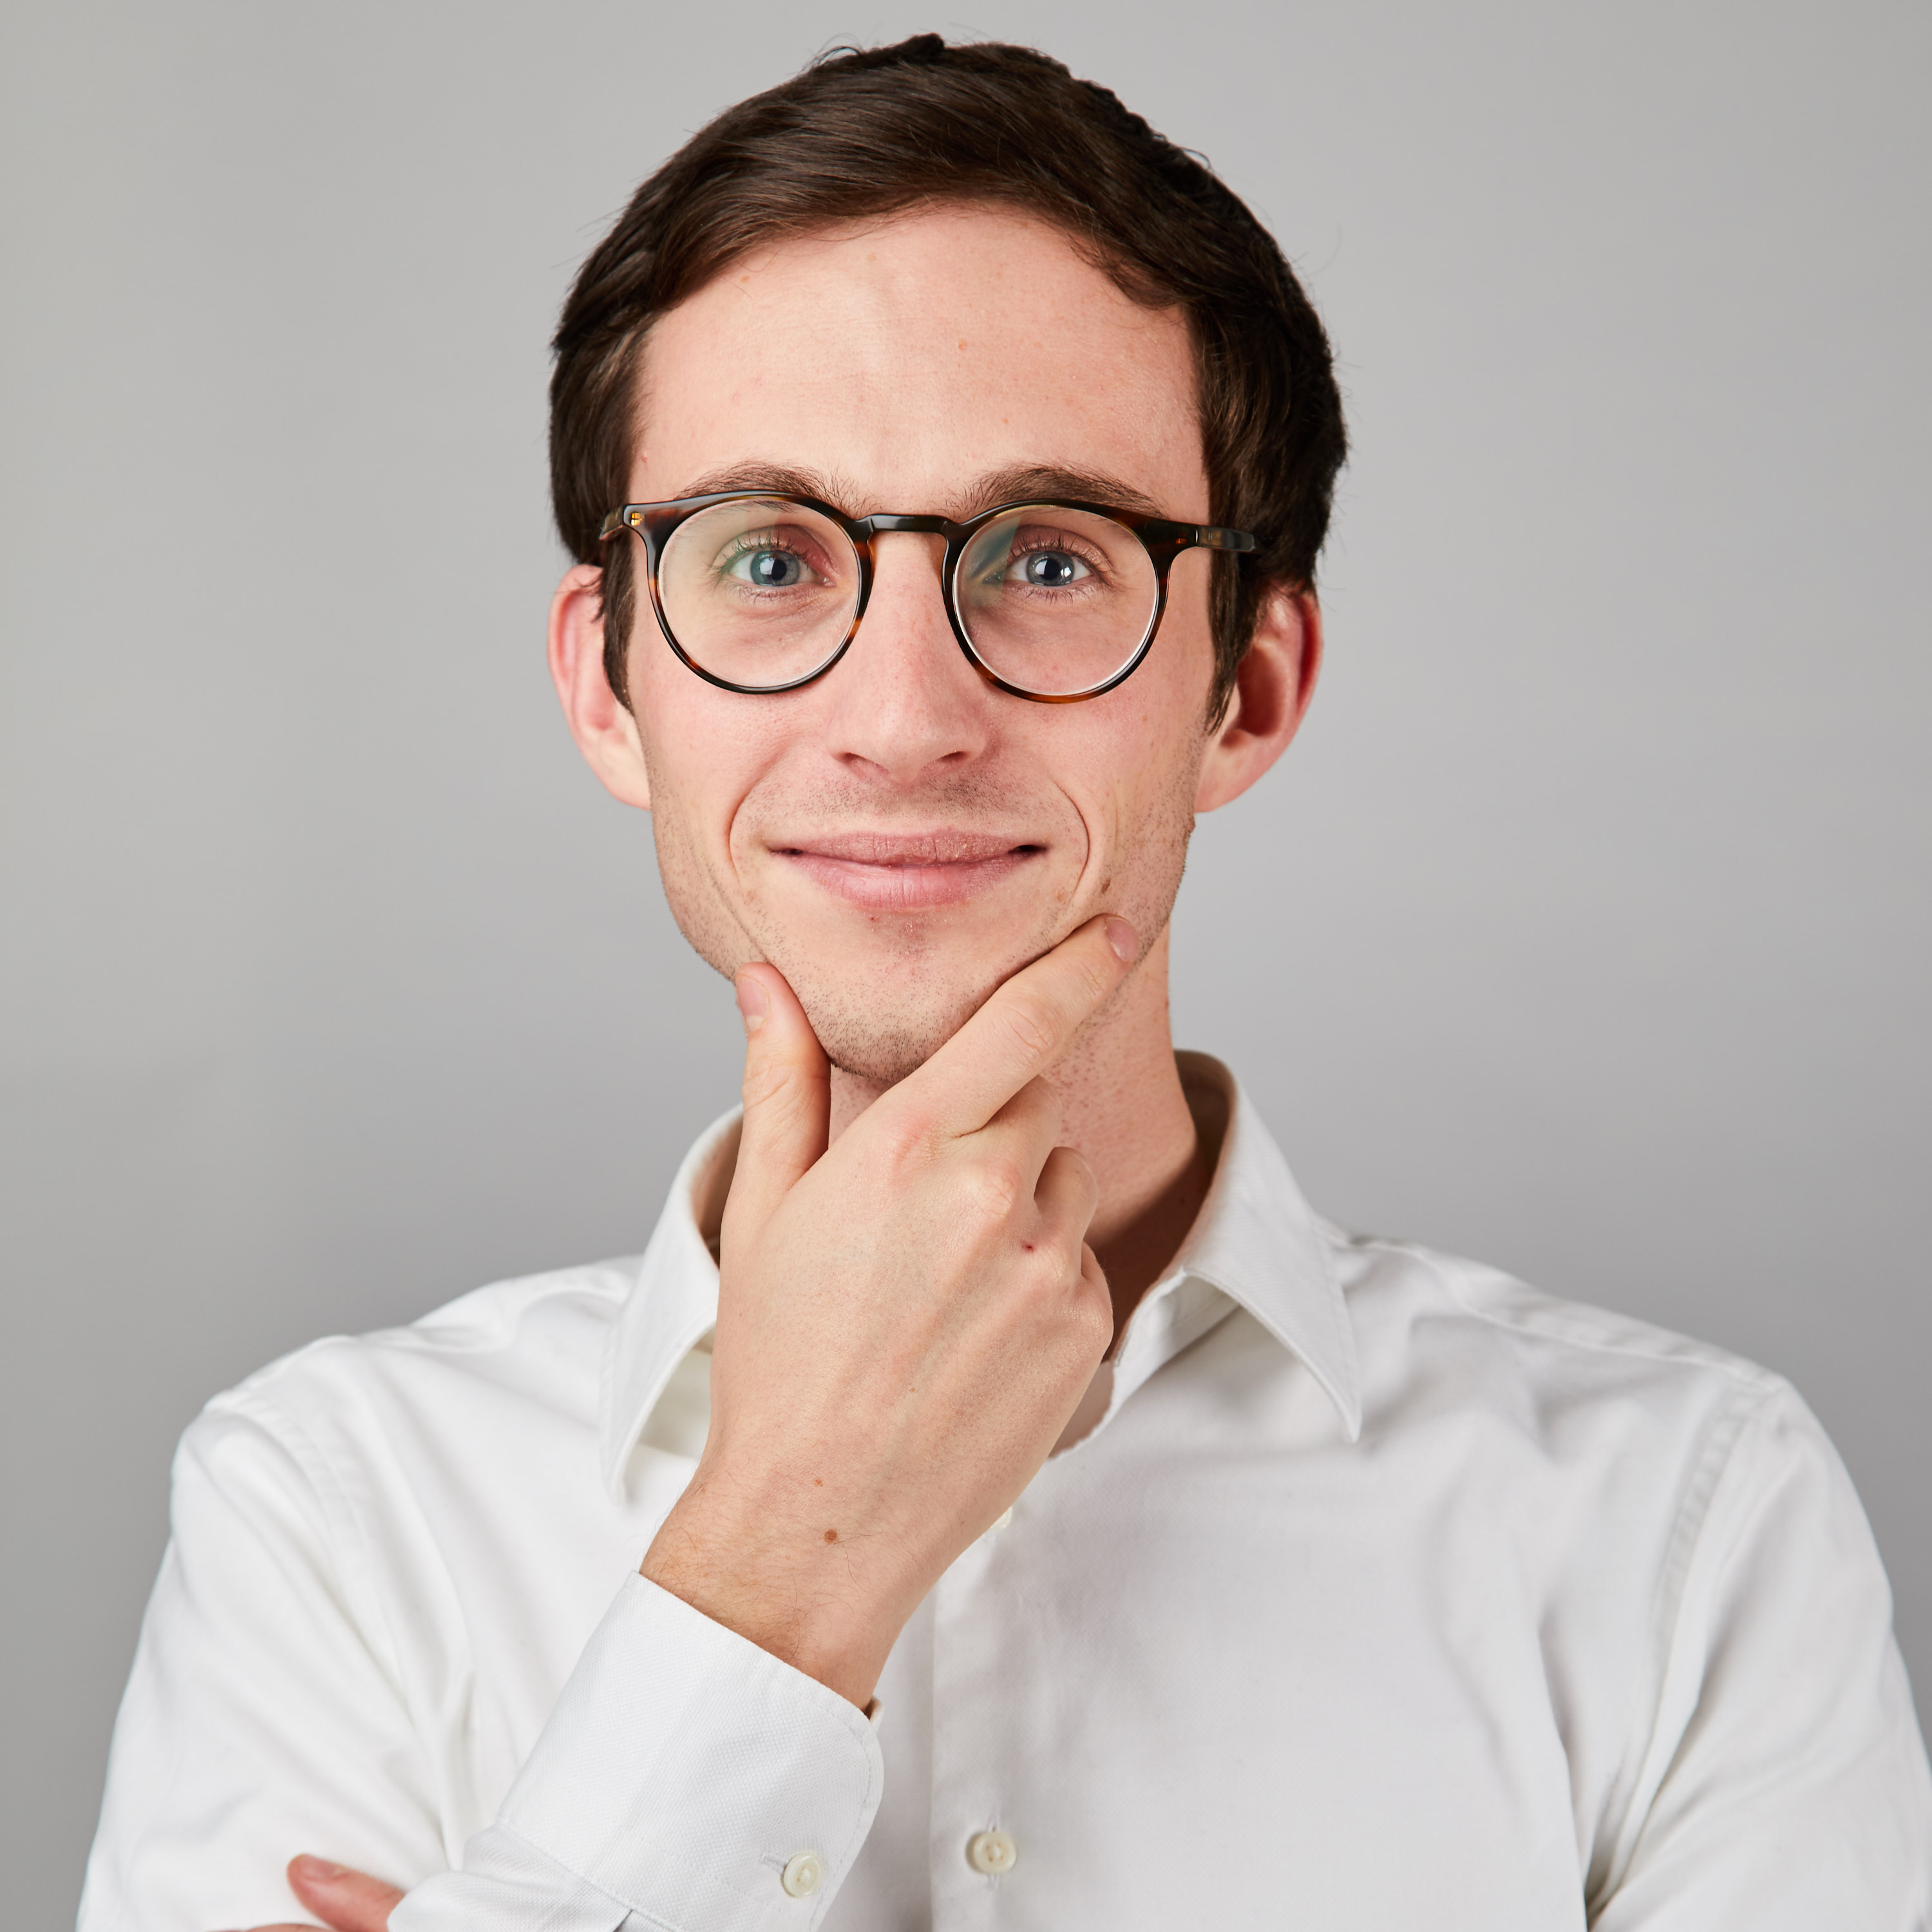 picture of jesse pappers - researcher at mobi